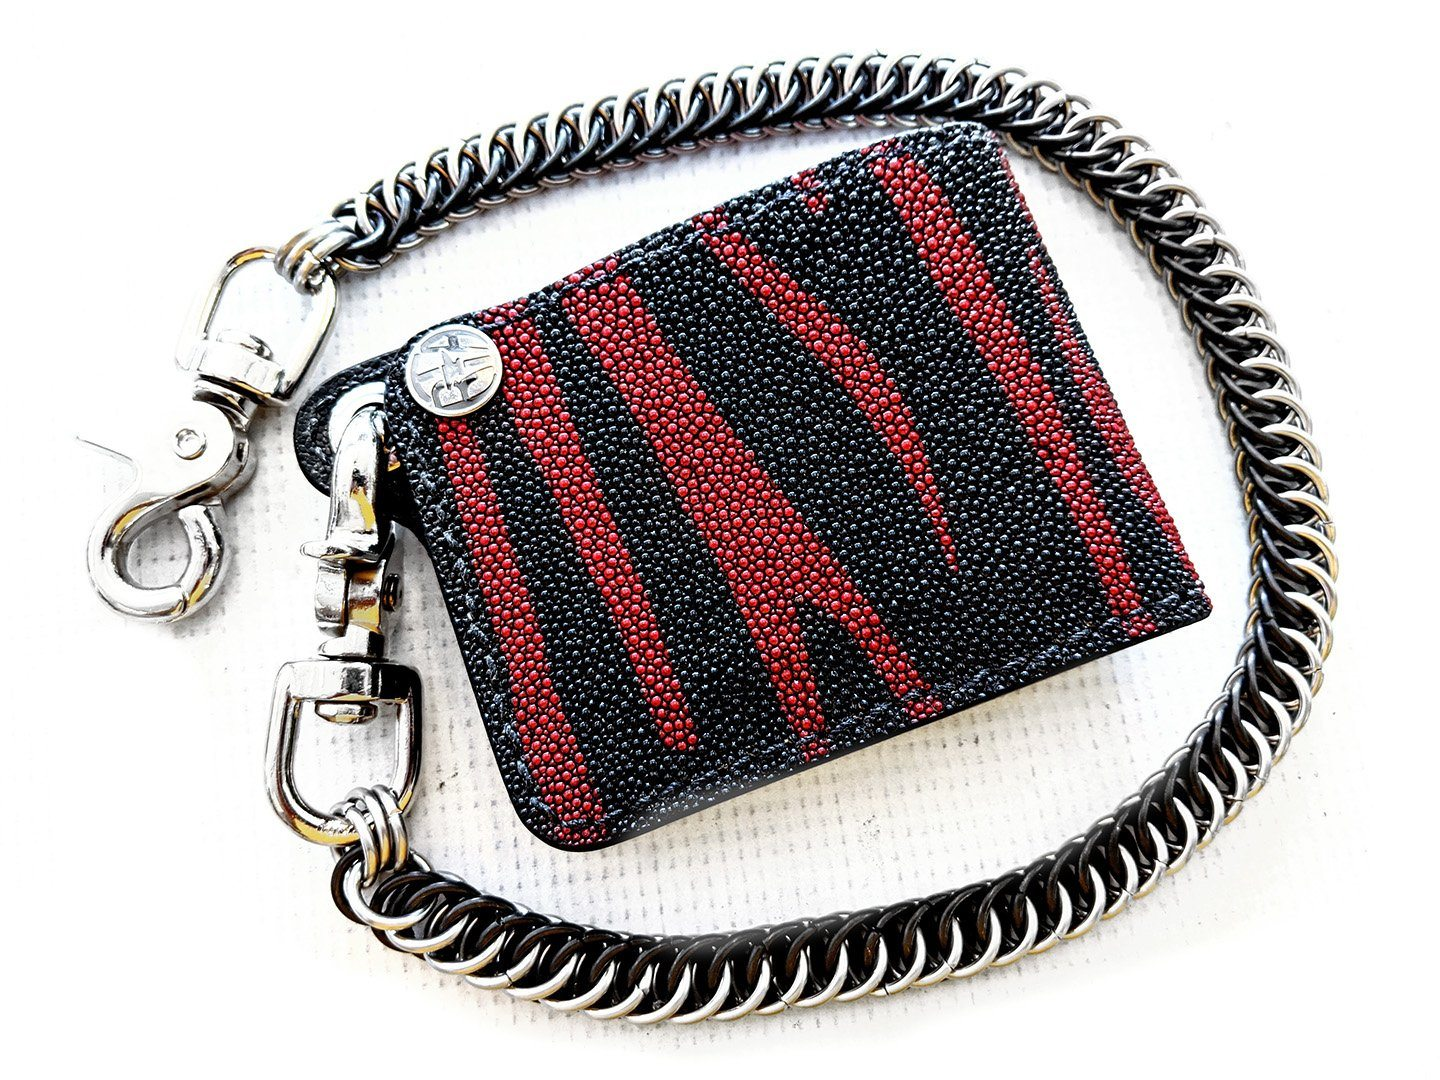 Mini Bifold Leather Chain Wallet - Red/Black Stingray 1 - Anvil Customs